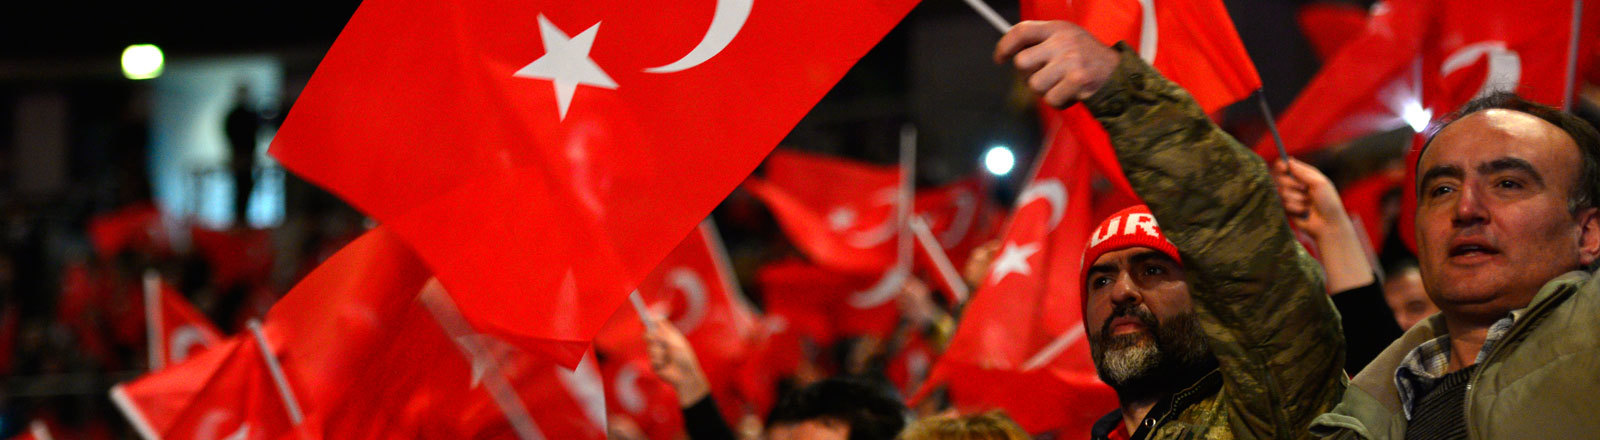 This file photo taken on February 18, 2017 shows participants waving Turkish flags during an event with the Turkish Prime Minister to promote a constitutional referendum in Oberhausen, western Germany. Turkish politicians will hold no further rallies in Germany ahead of April's referendum on expanding President Recep Tayyip Erdogan's powers, his AKP party said on March 20, 2017 amid a heated diplomatic row.